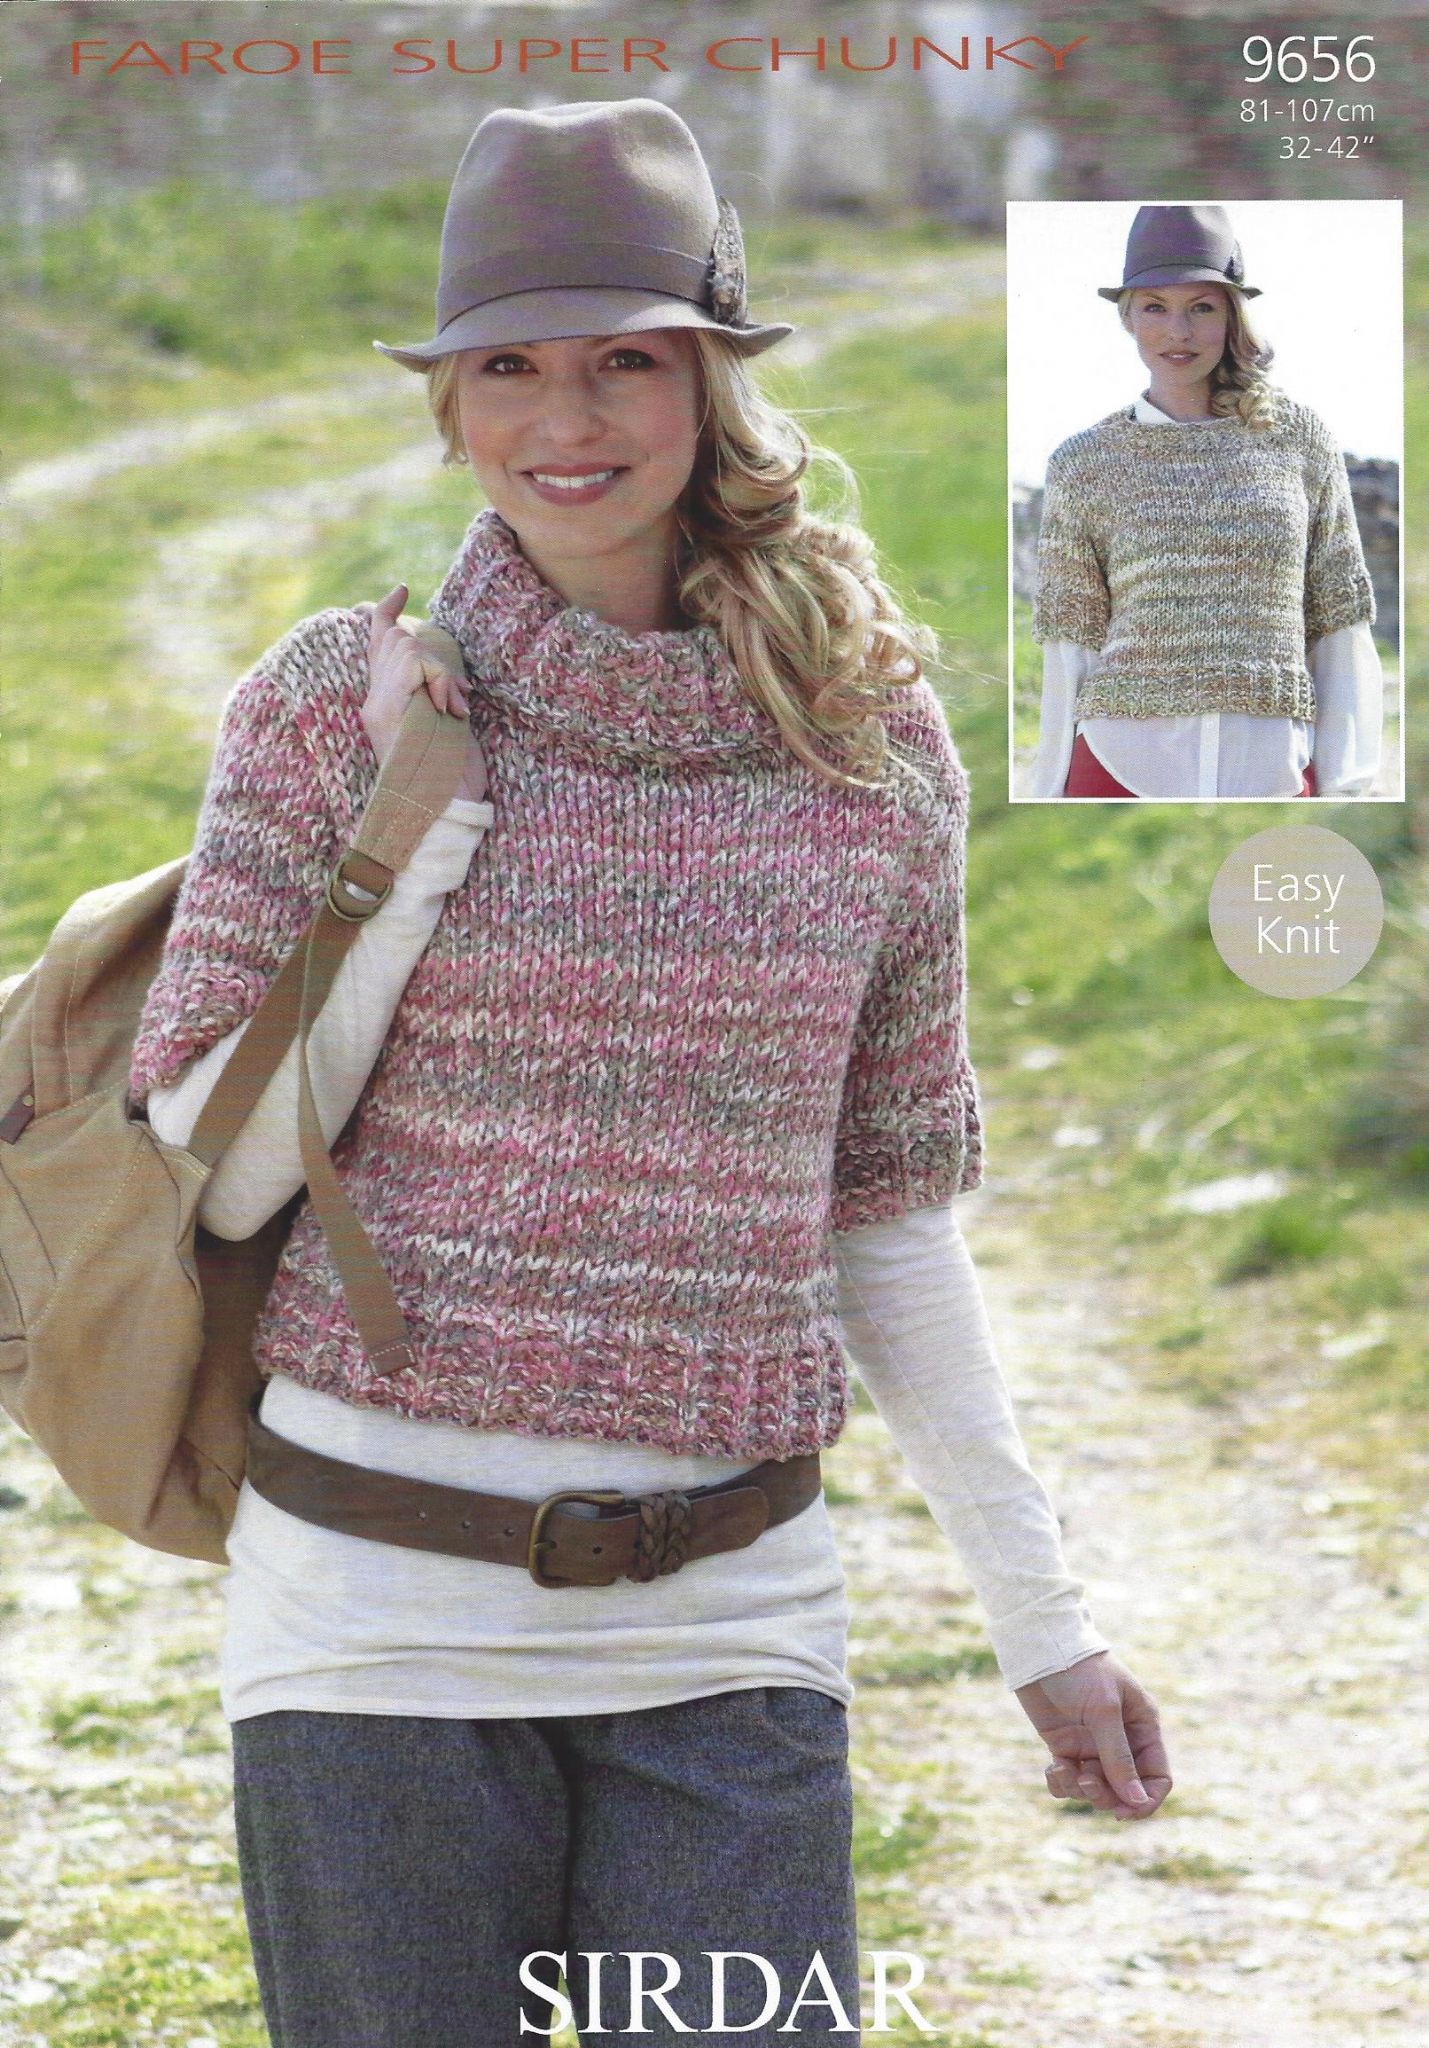 Sirdar Faroe Super Chunky - 9656 Sweaters Knitting Pattern